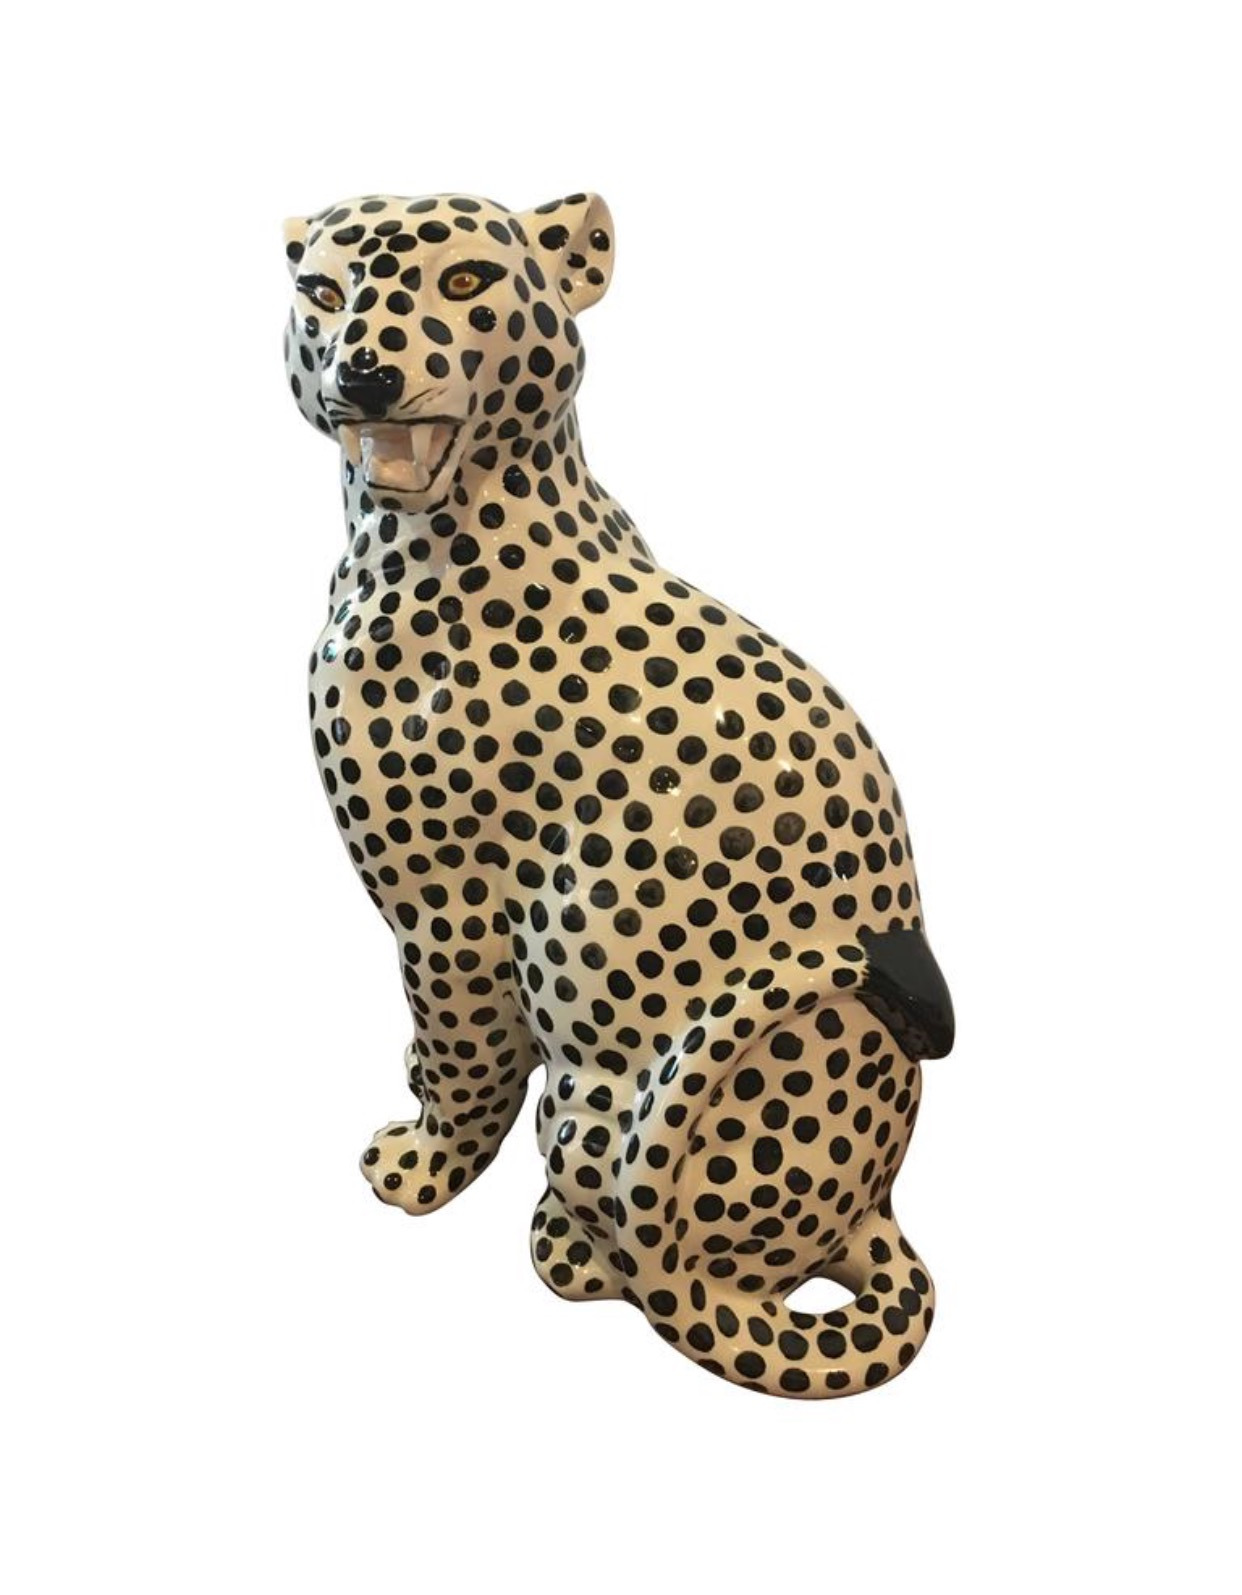 Vintage Cheetah Jaguar Large Ceramic Statue Hollywood